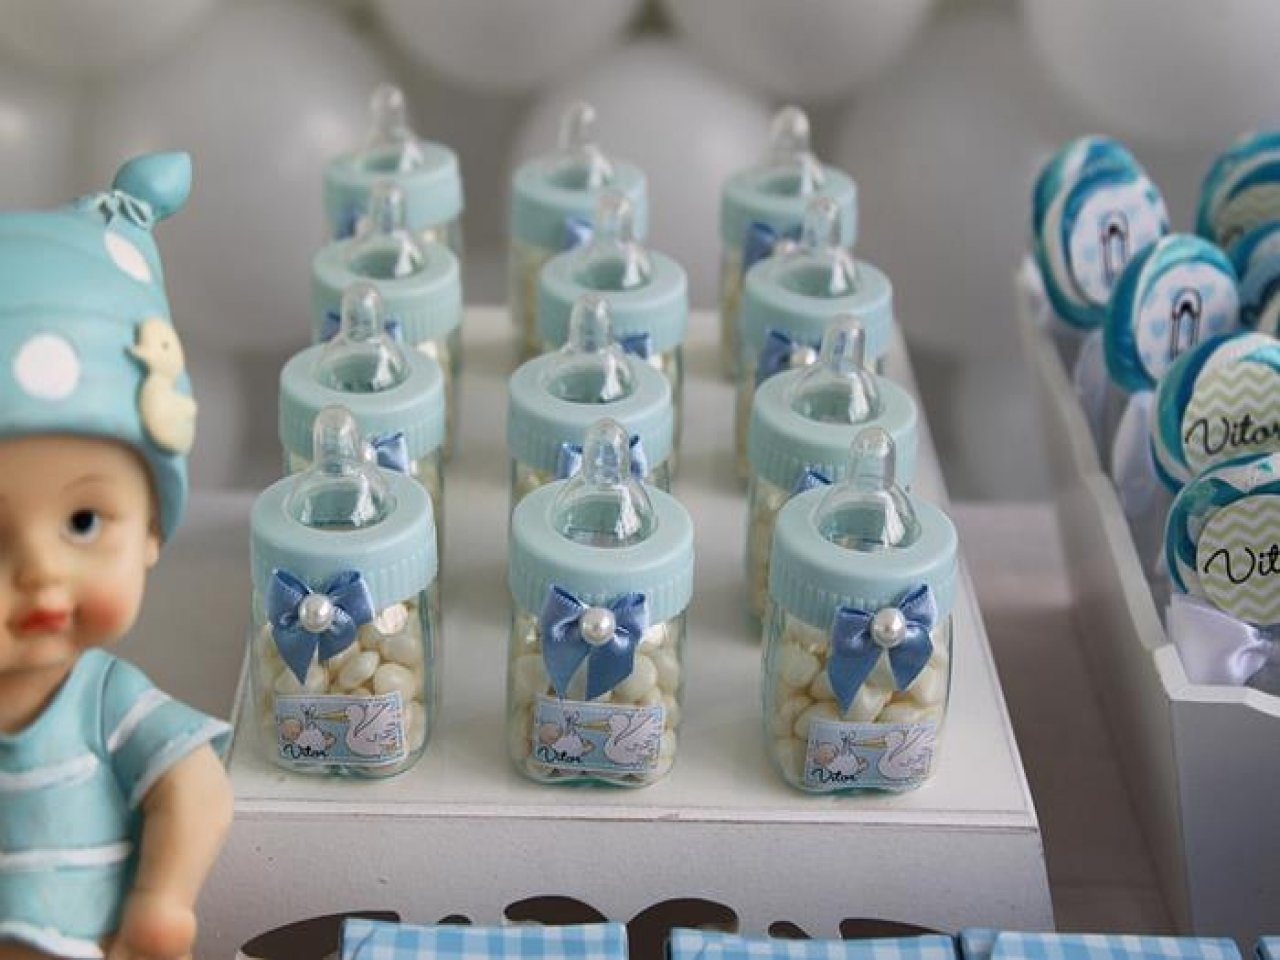 10 Attractive Baby Shower Ideas For Boys On A Budget baby shower favor ideas for boy baby boy shower ideas baby shower 2020